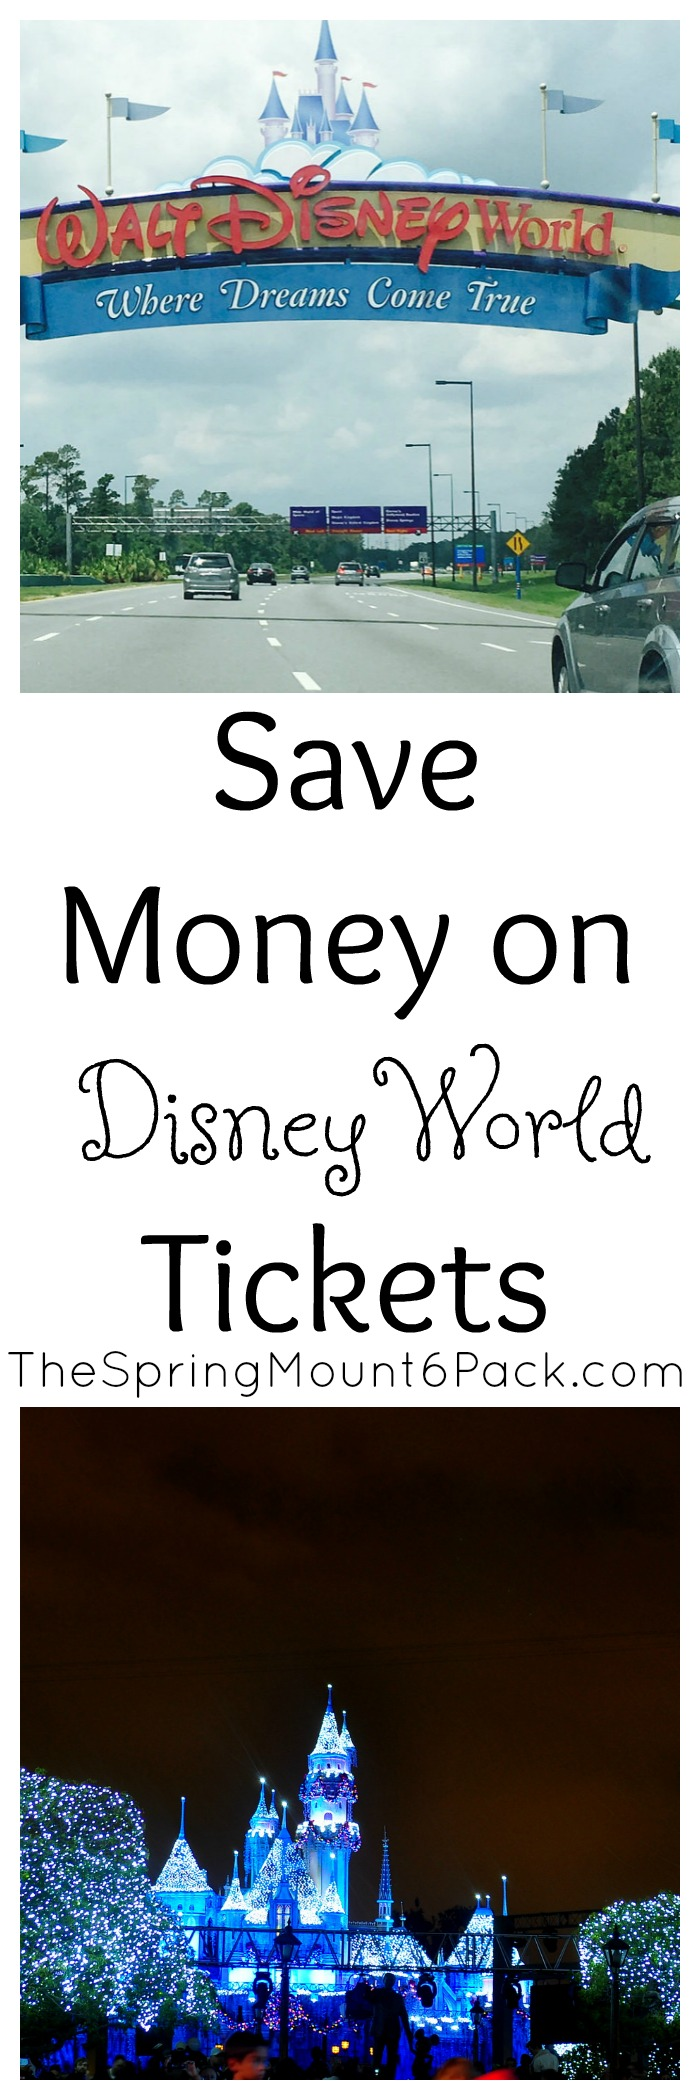 Planning a trip to Disney? Try these tips to save money on Disneyworld tickets. These tips work to save money on Disneyland tickets too.